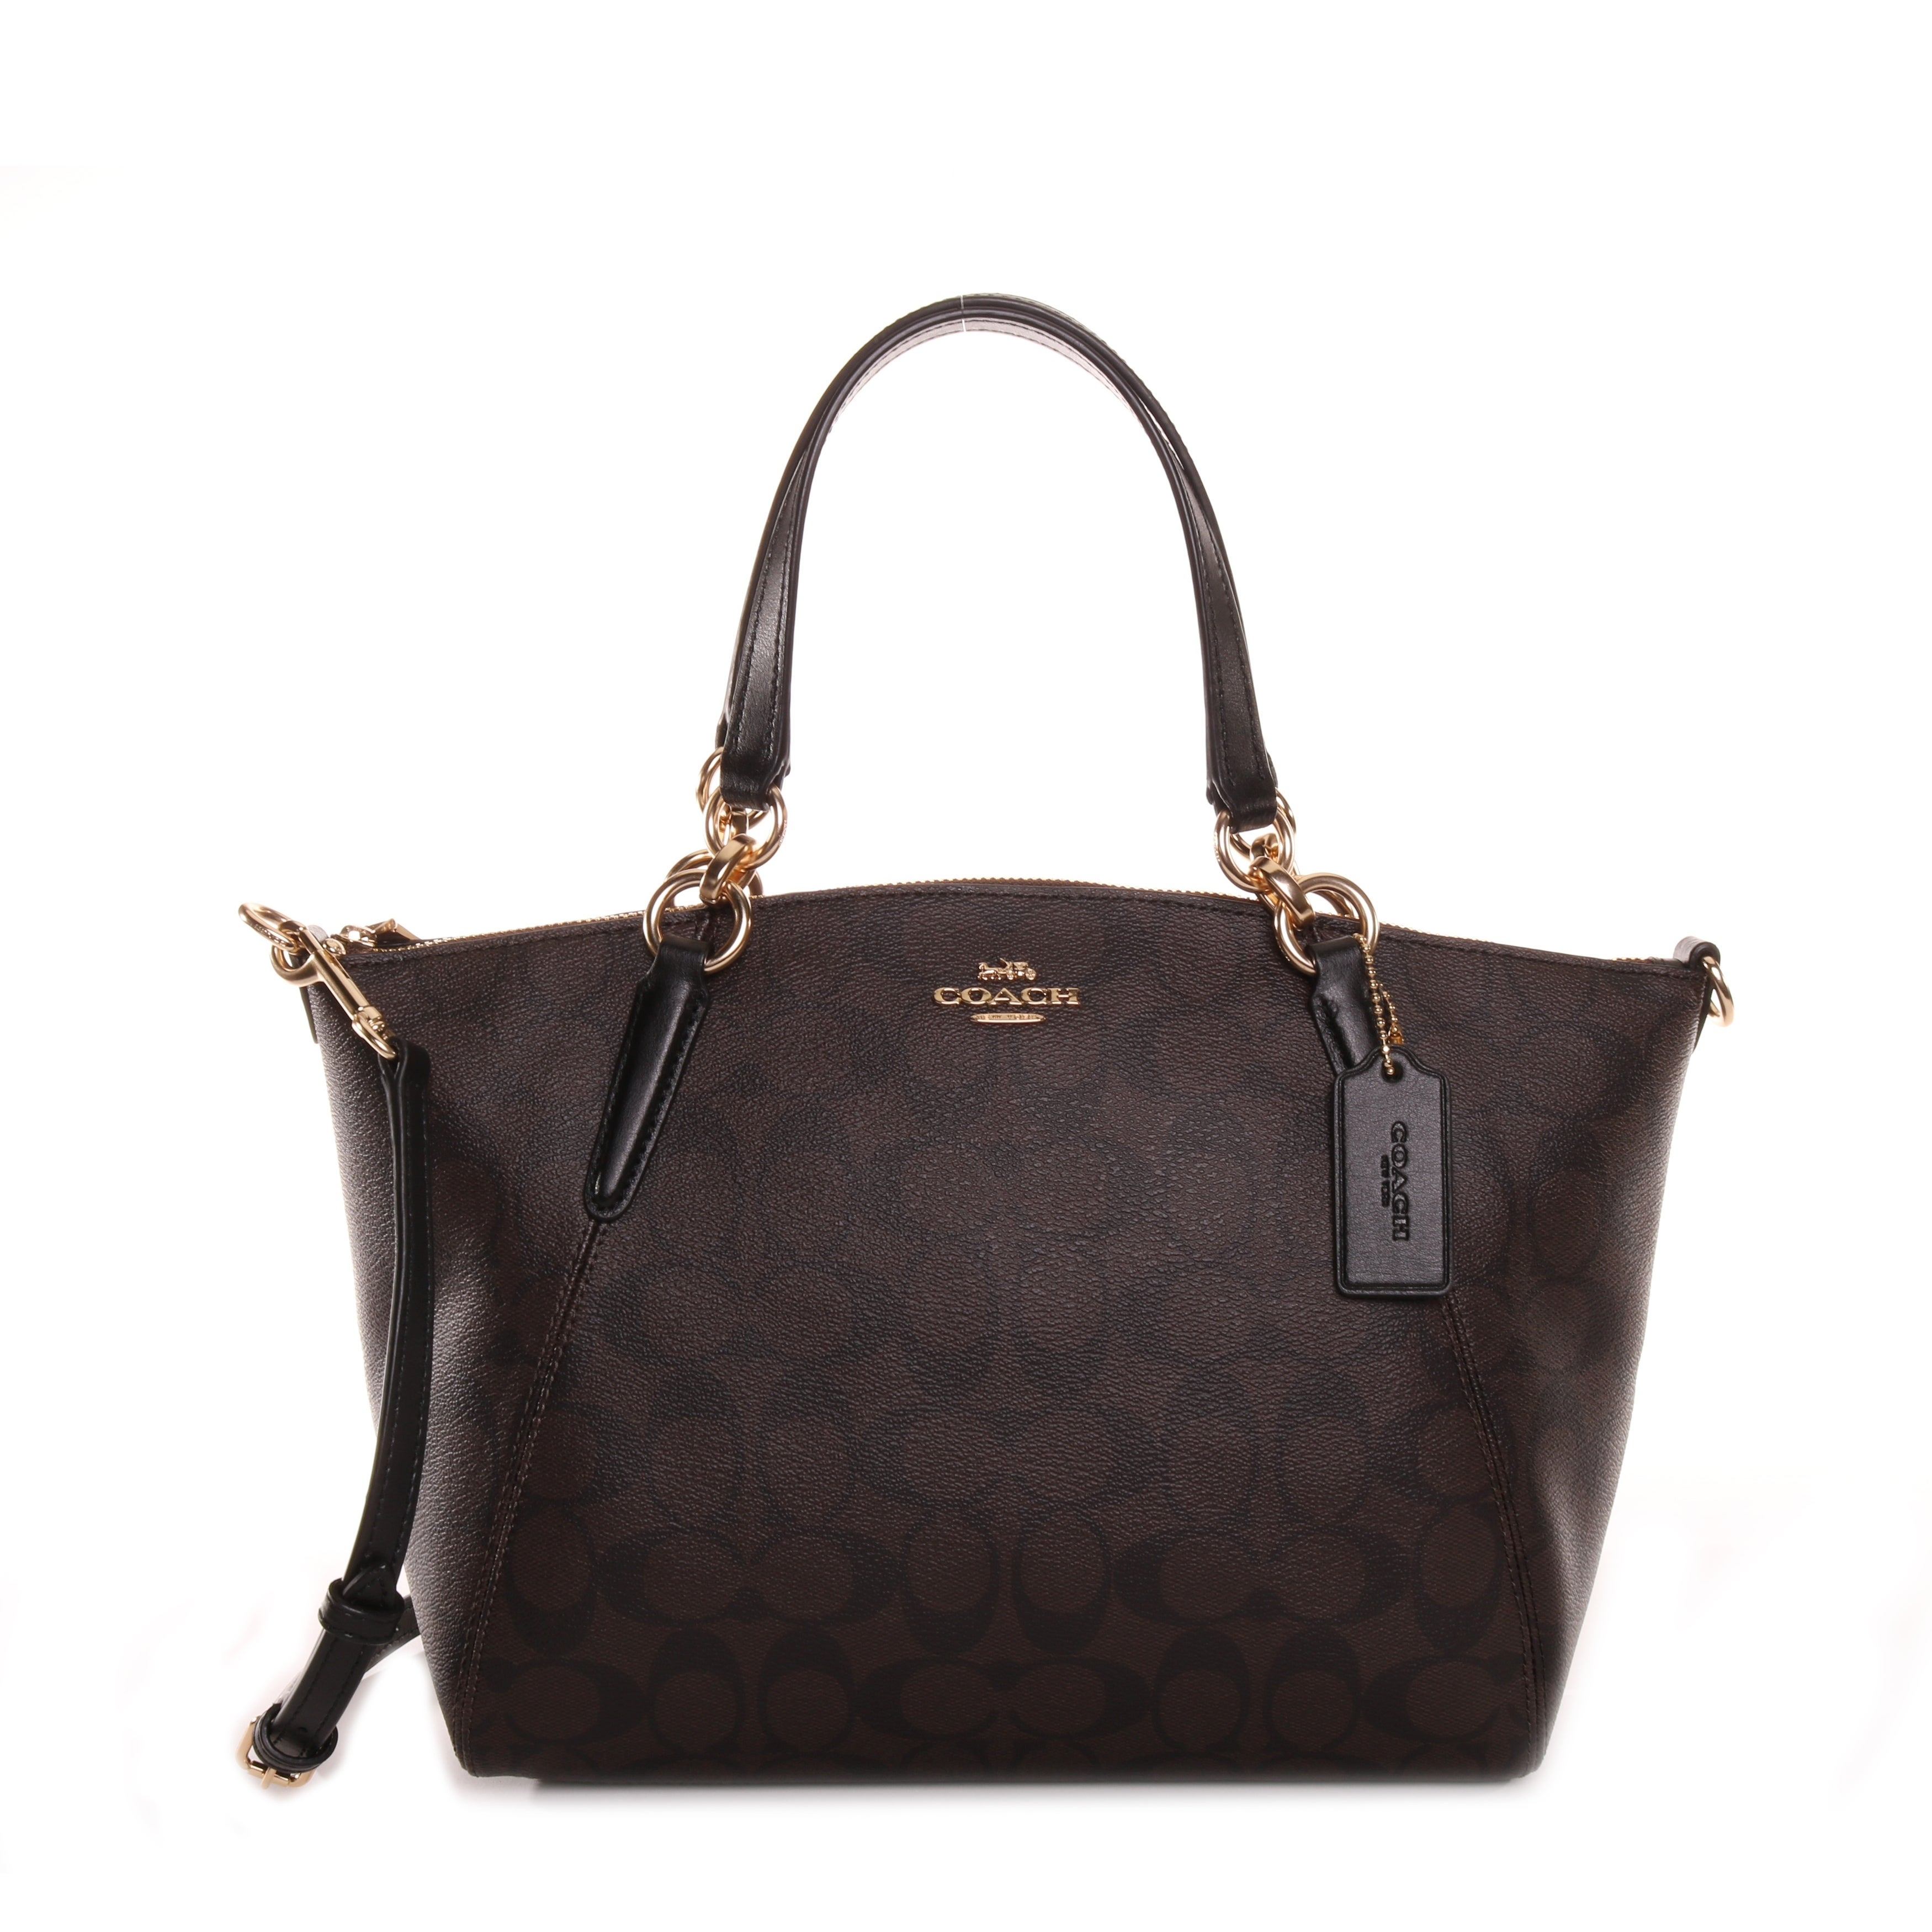 4dab7ffe3e27 Shop Coach Women's Small Kelsey Satchel - Free Shipping Today - Overstock -  28377924